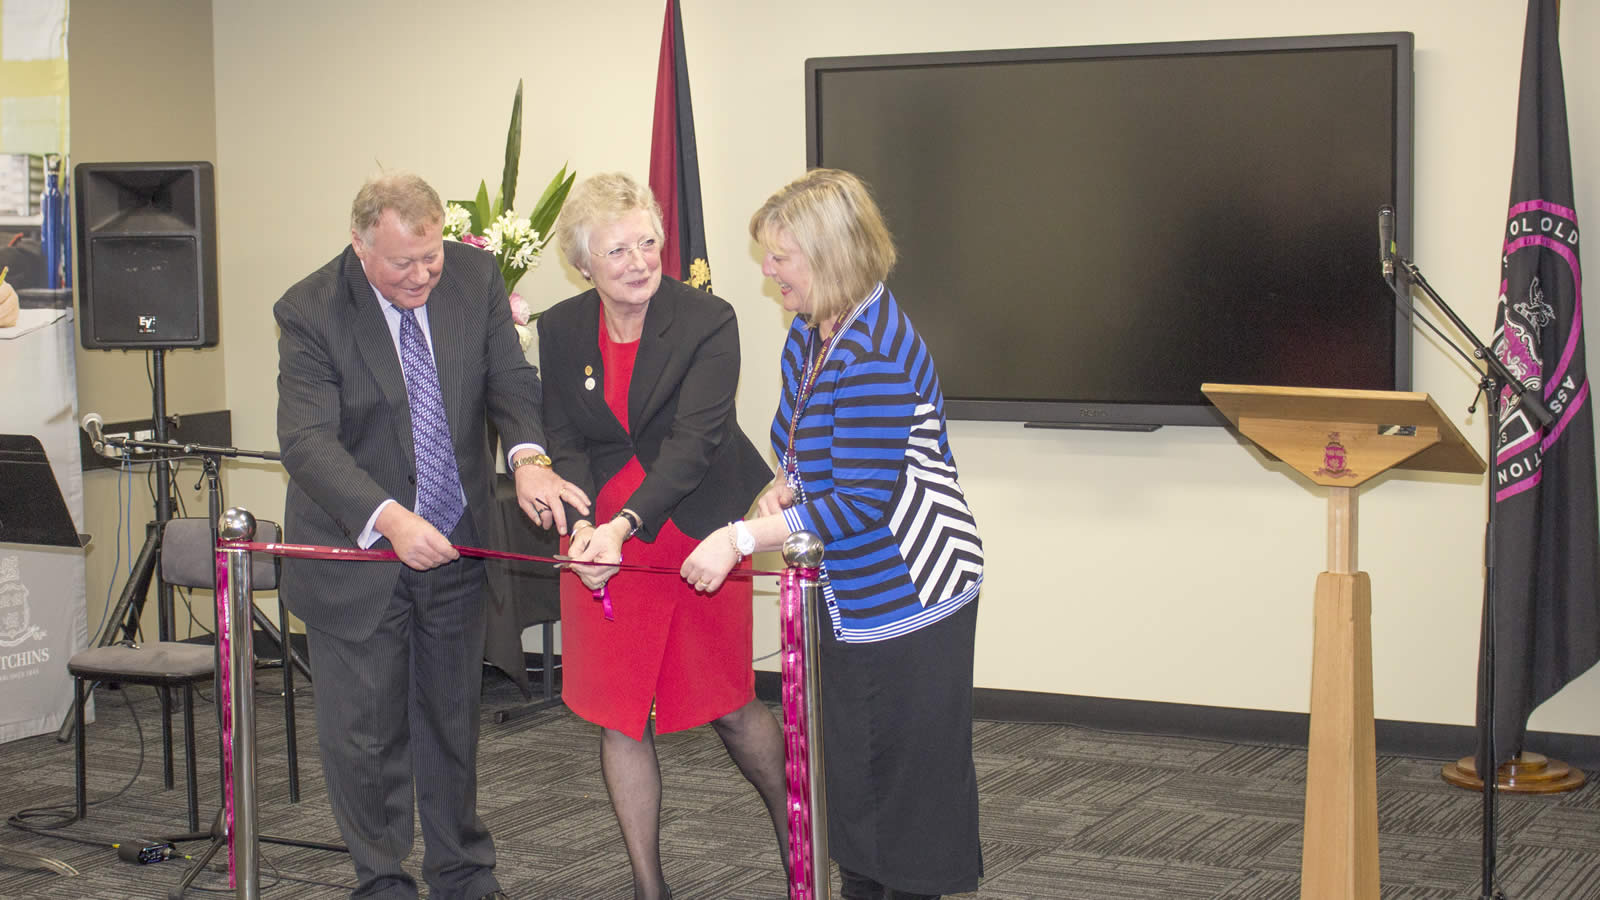 Mr Warwick Dean, Dr Jill Abell and Mrs Jenny Manthey opening the Stephens Library and Junior School extension (large)